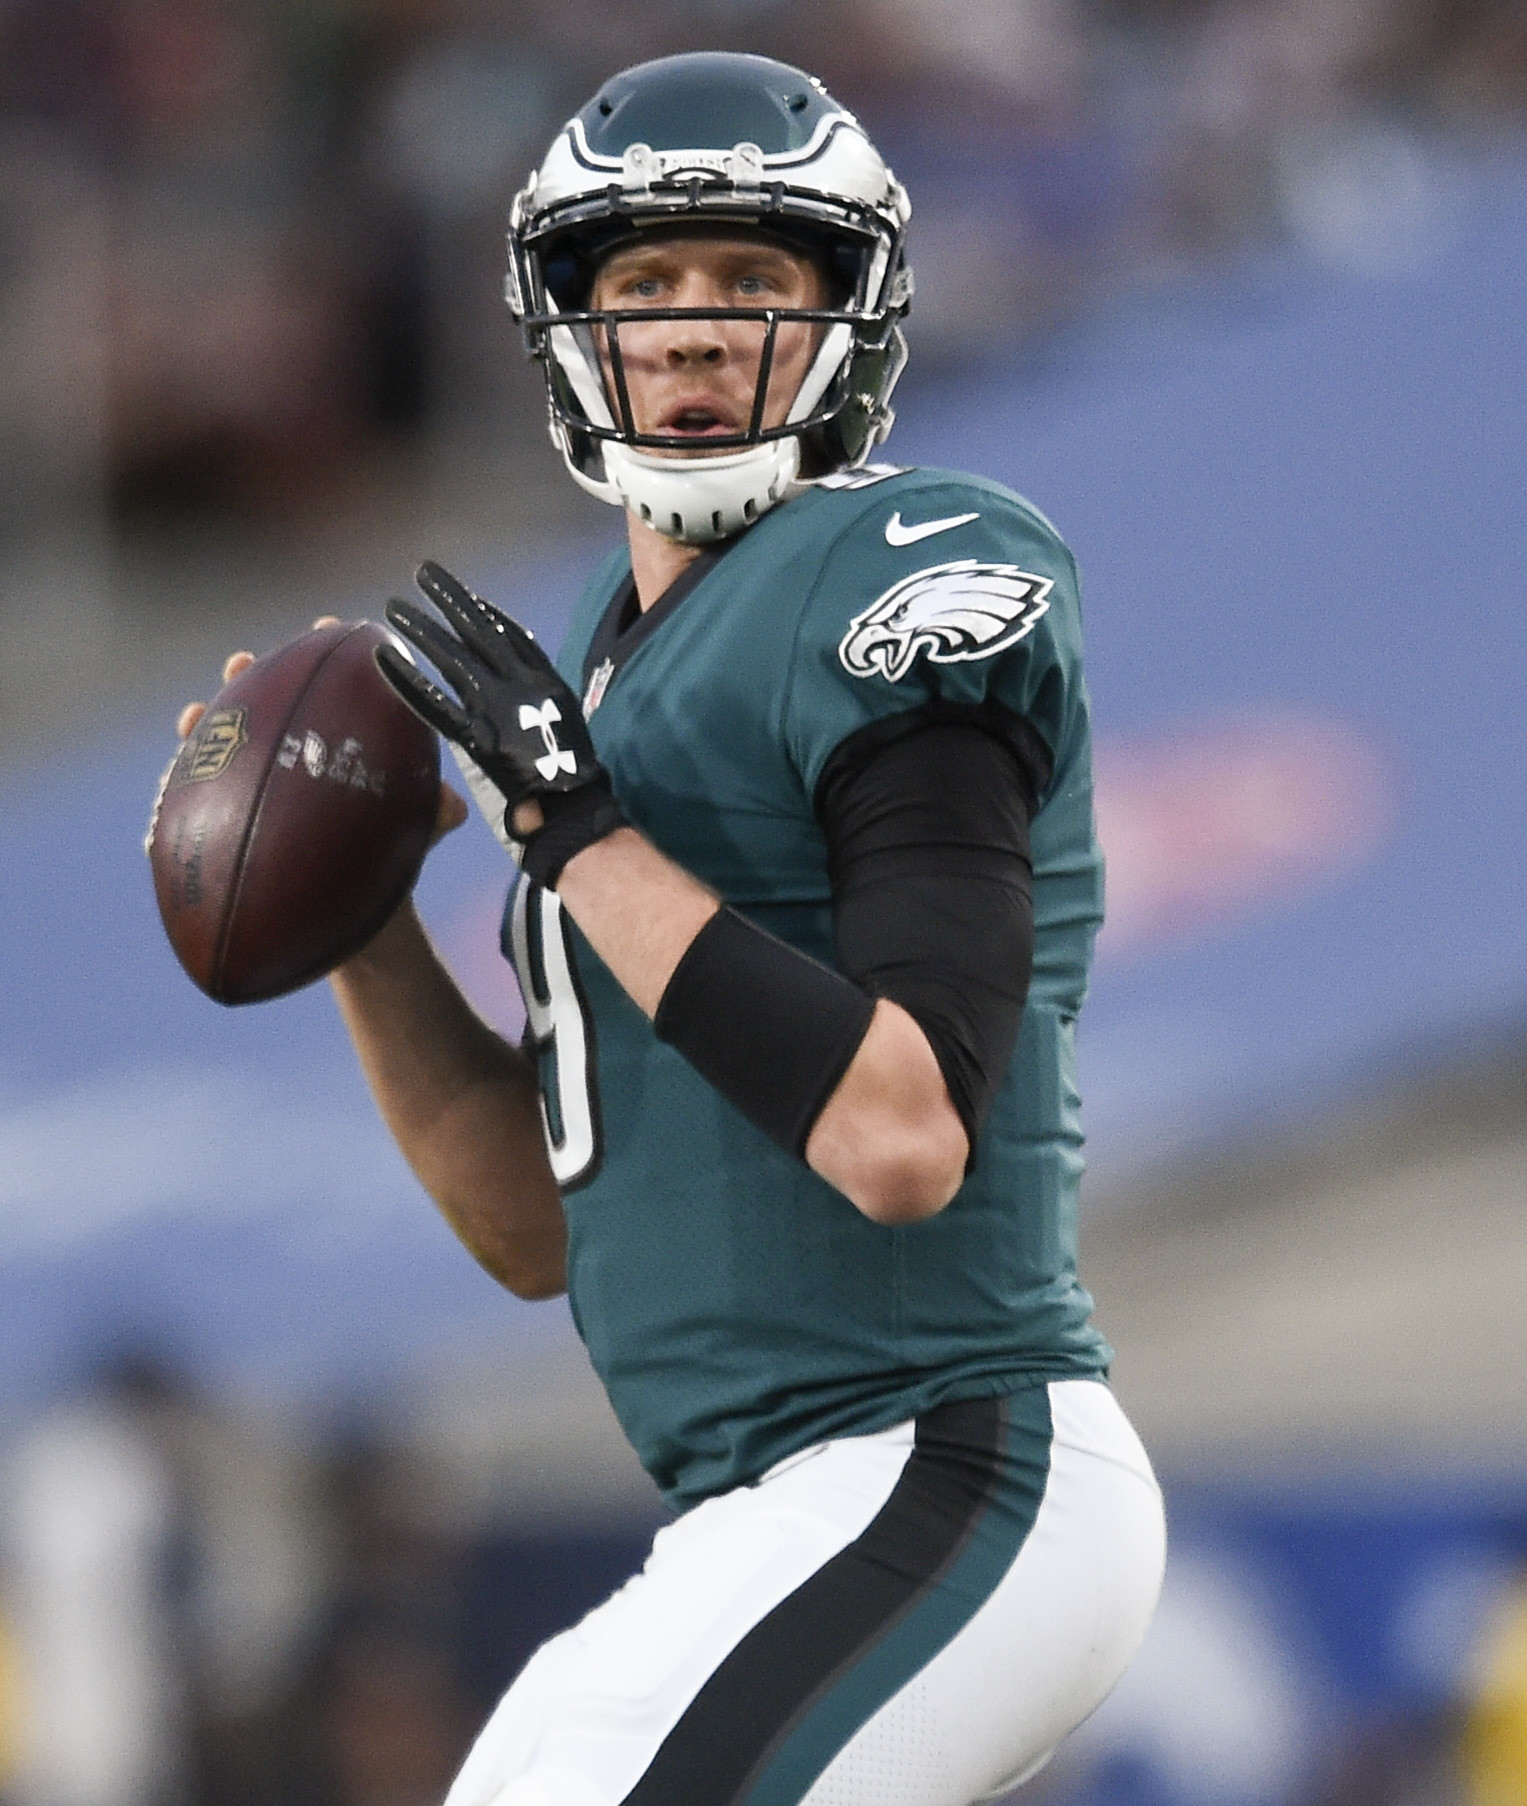 nick foles - photo #21